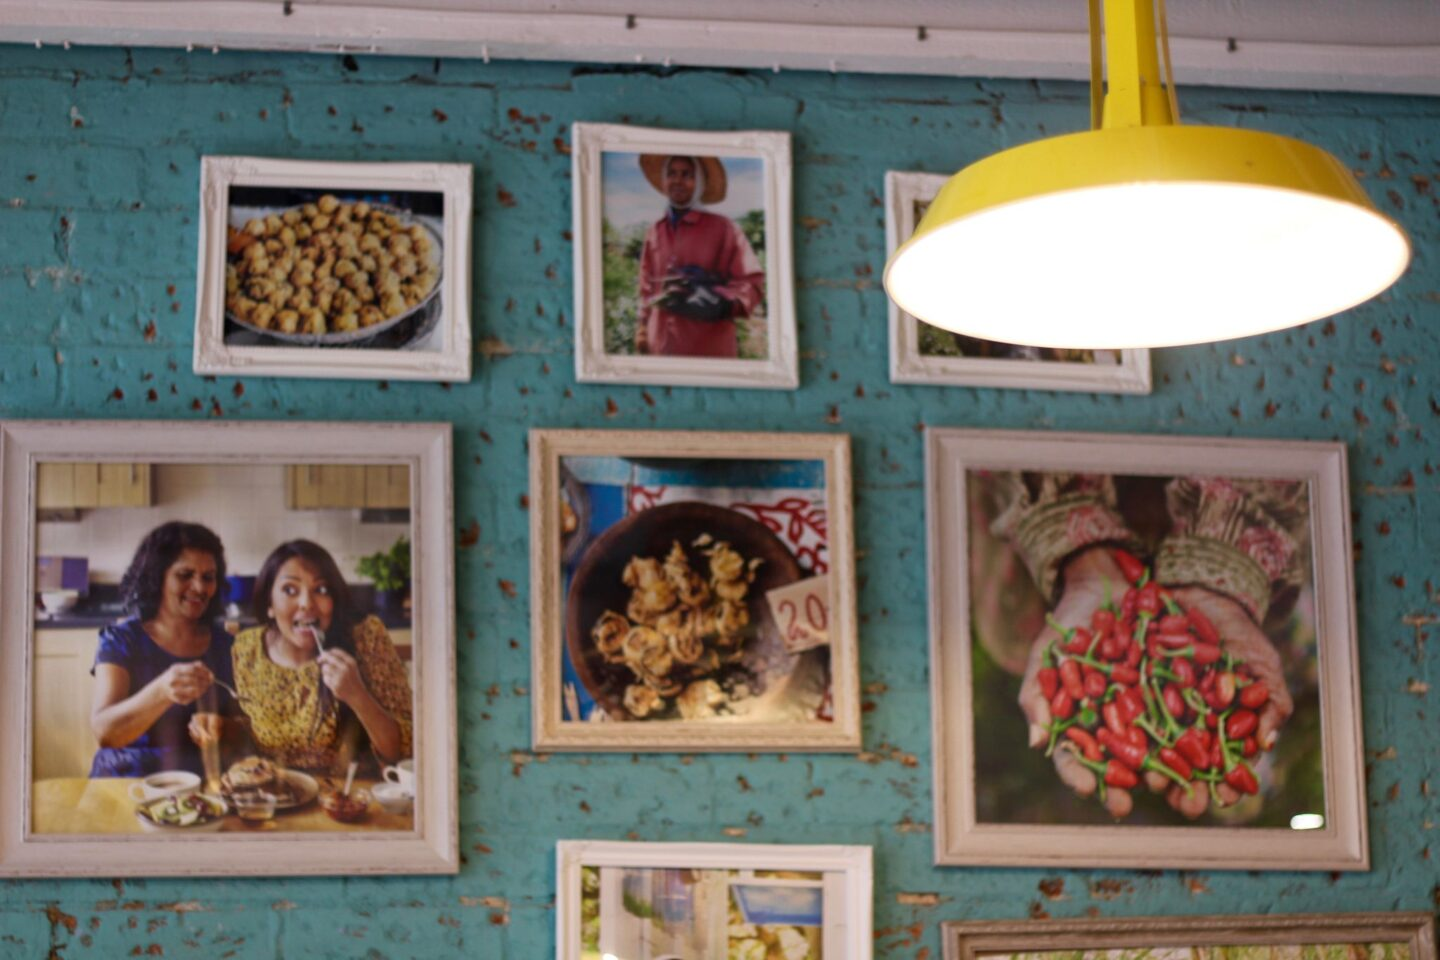 decor inside Lakaz Maman Mauritian street kitchen